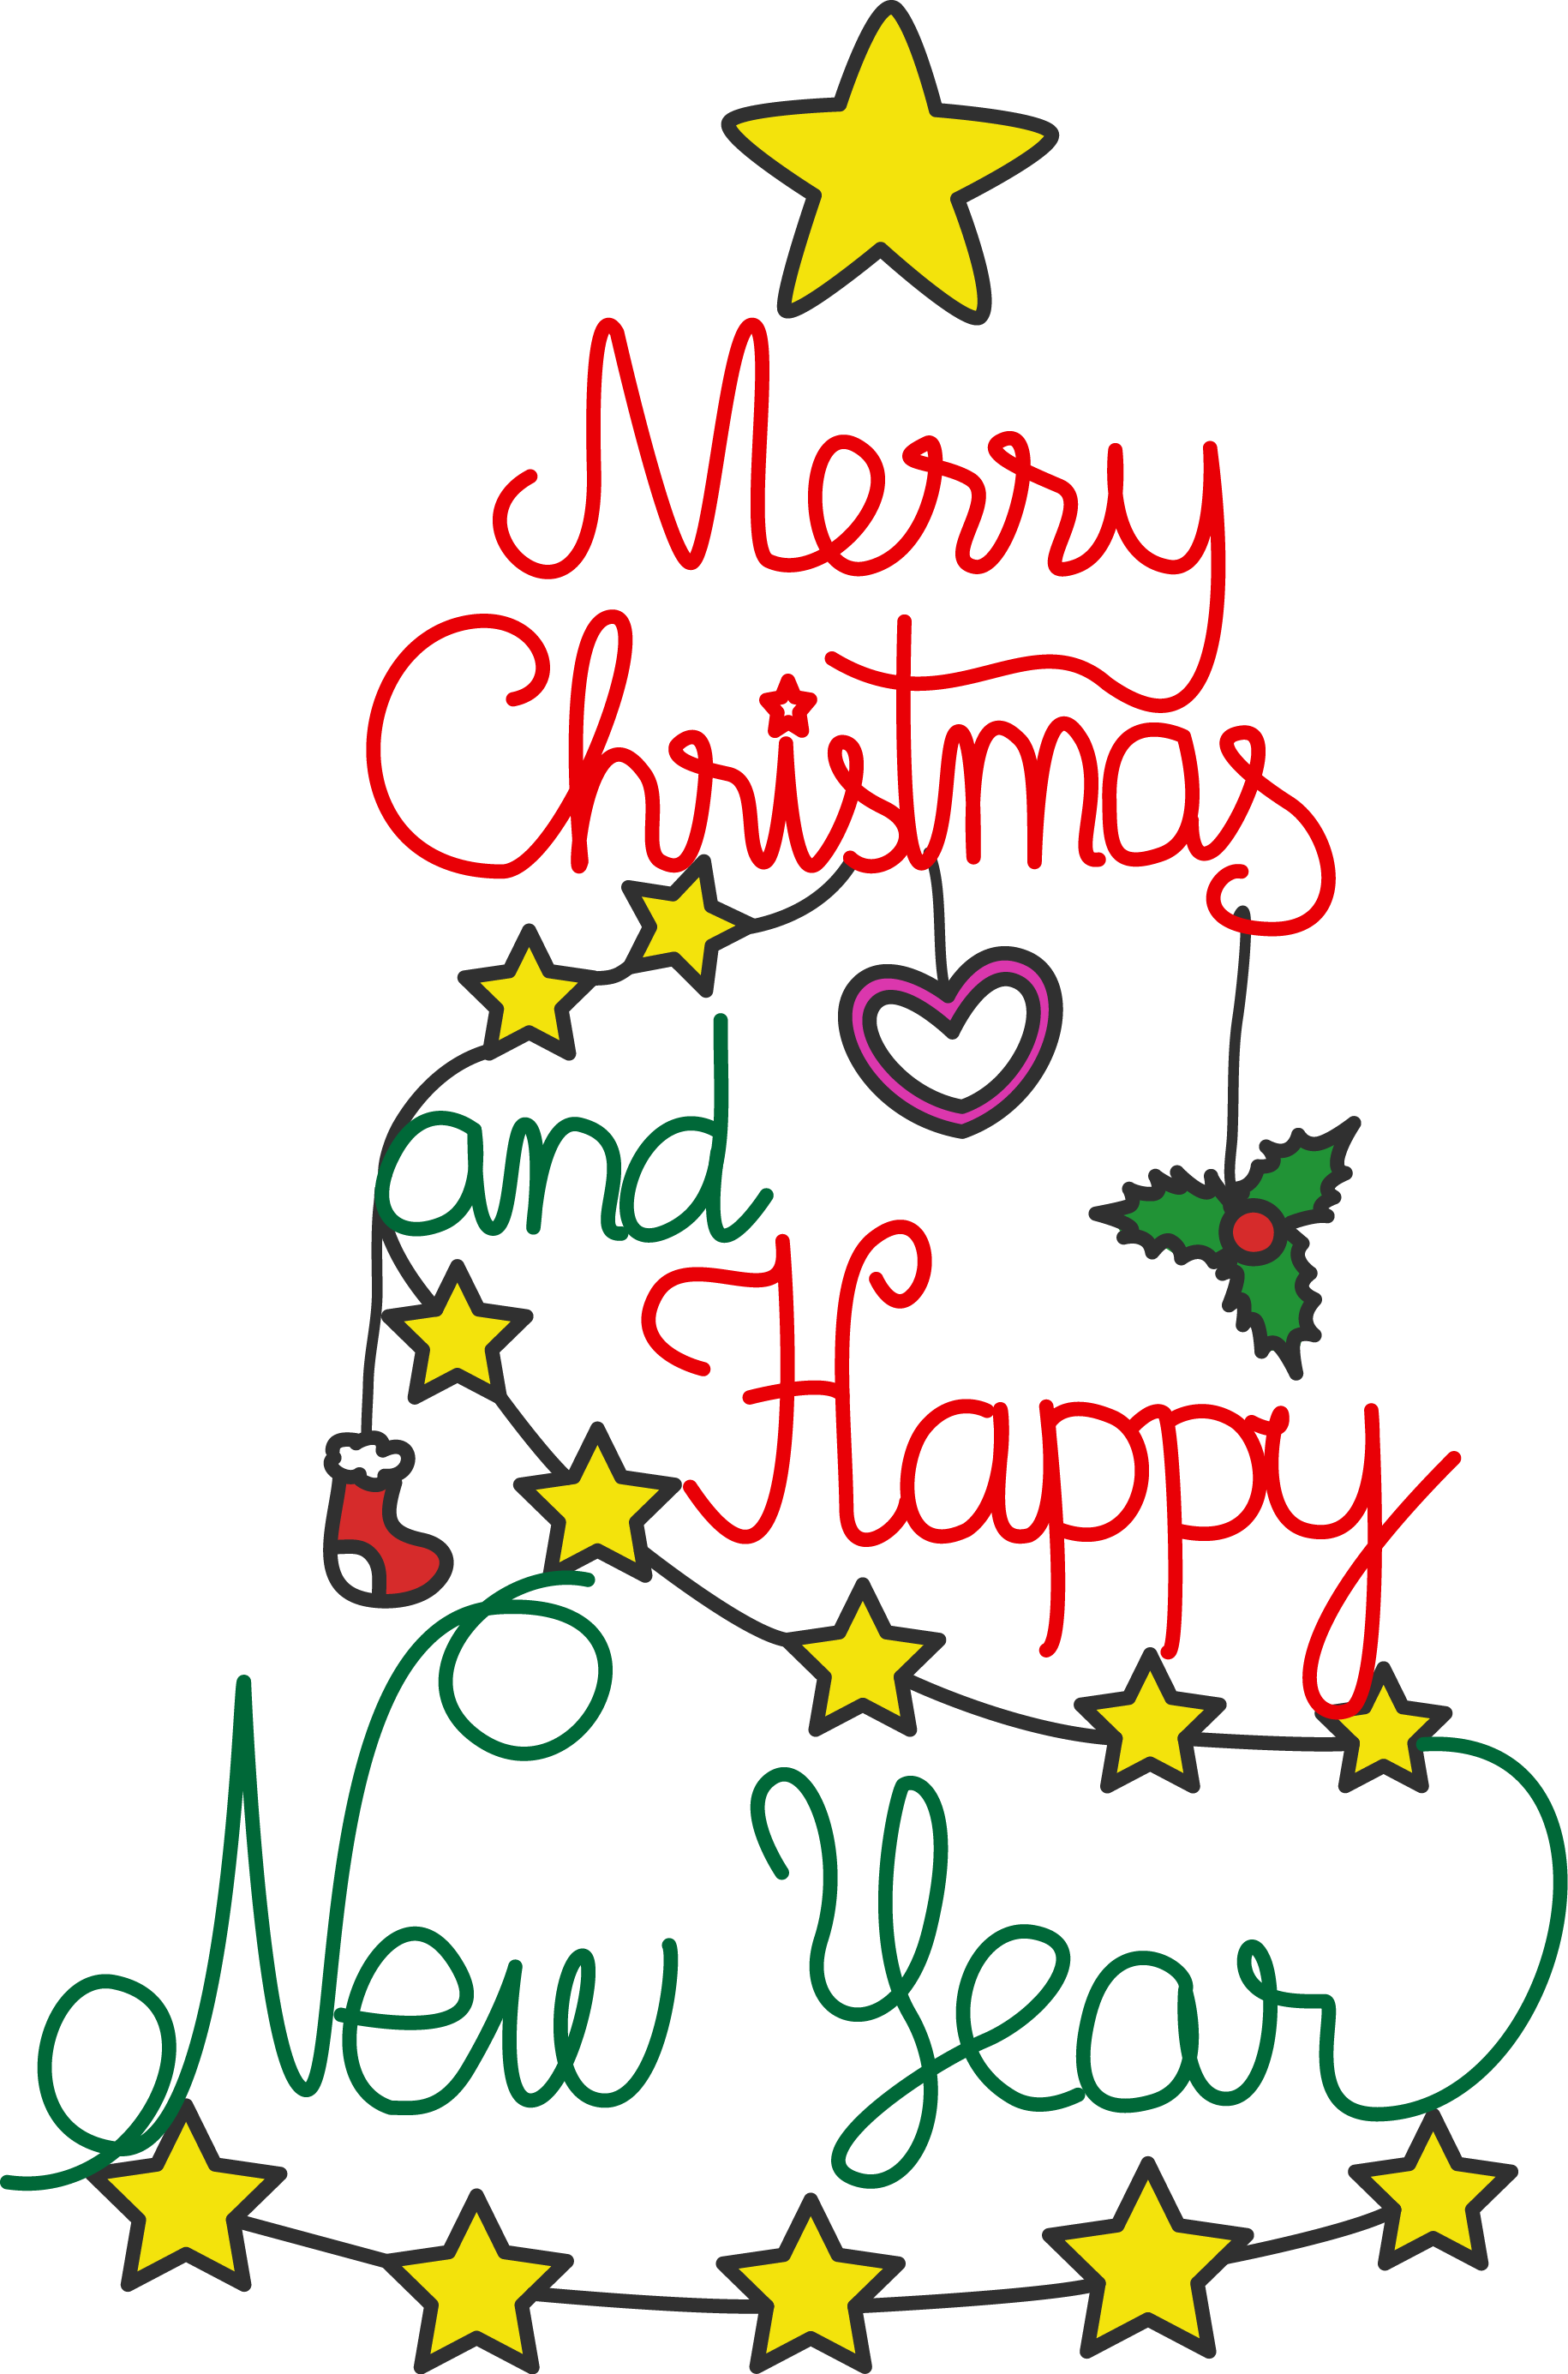 Merry Christmas Images Clip Art.Clipart Free Merry Christmas Clipart Free Merry Christmas